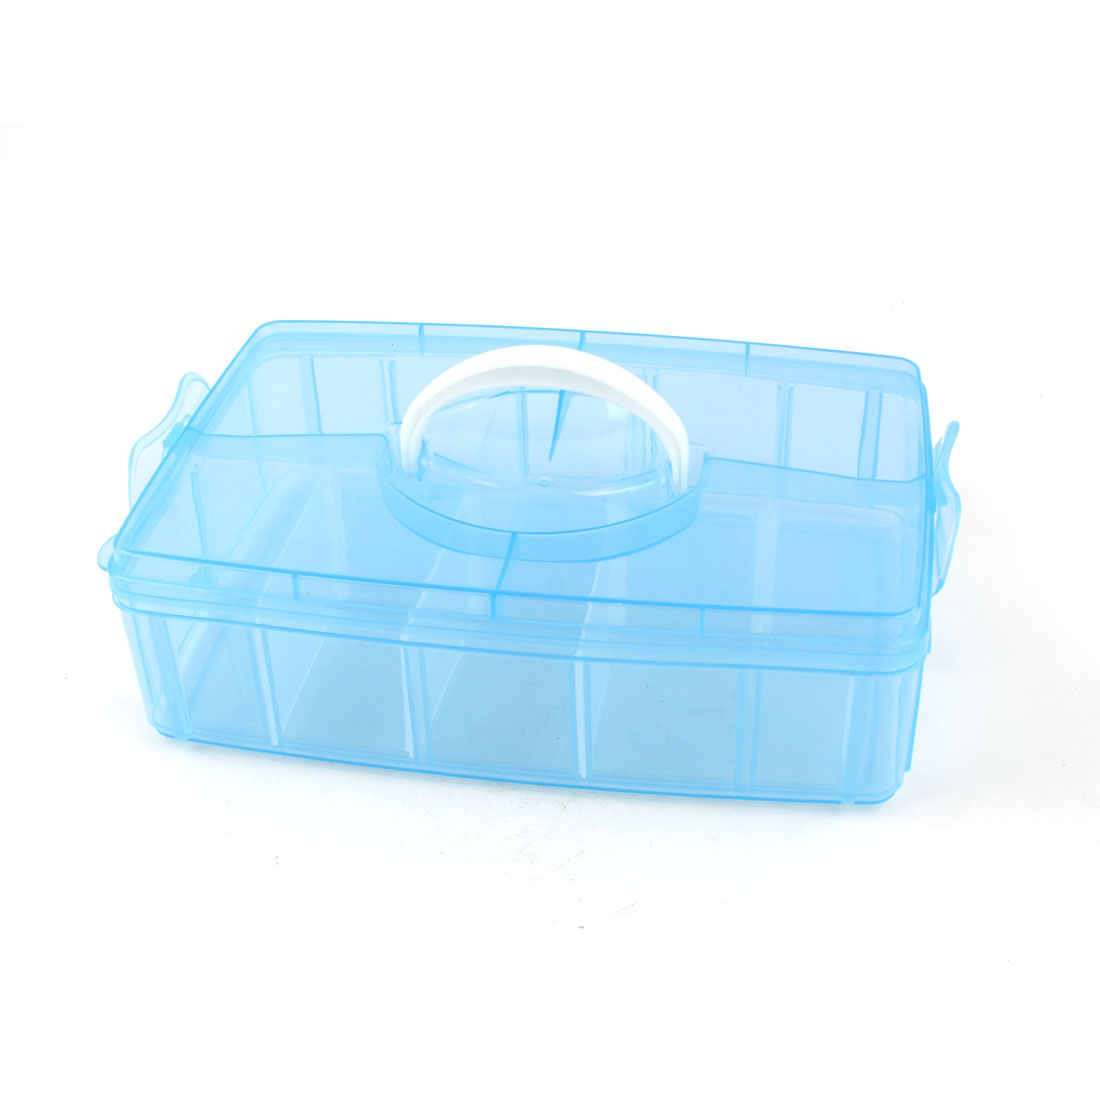 Household Blue Plastic 10 Slots Separable Hand Carry Storage Box Container